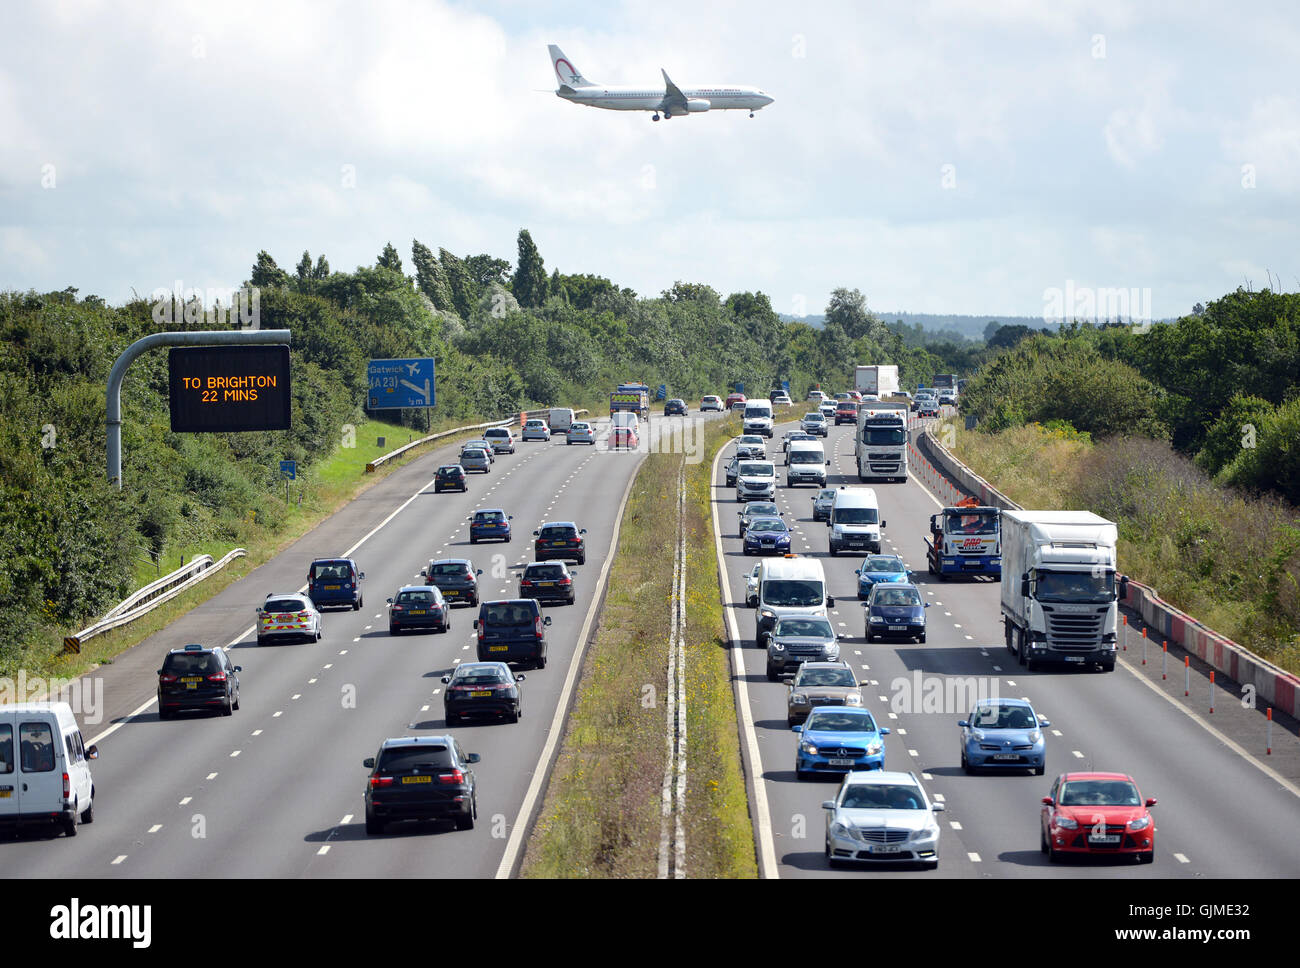 Plane over A23, coming in to land at London Gatwick airport - Stock Image